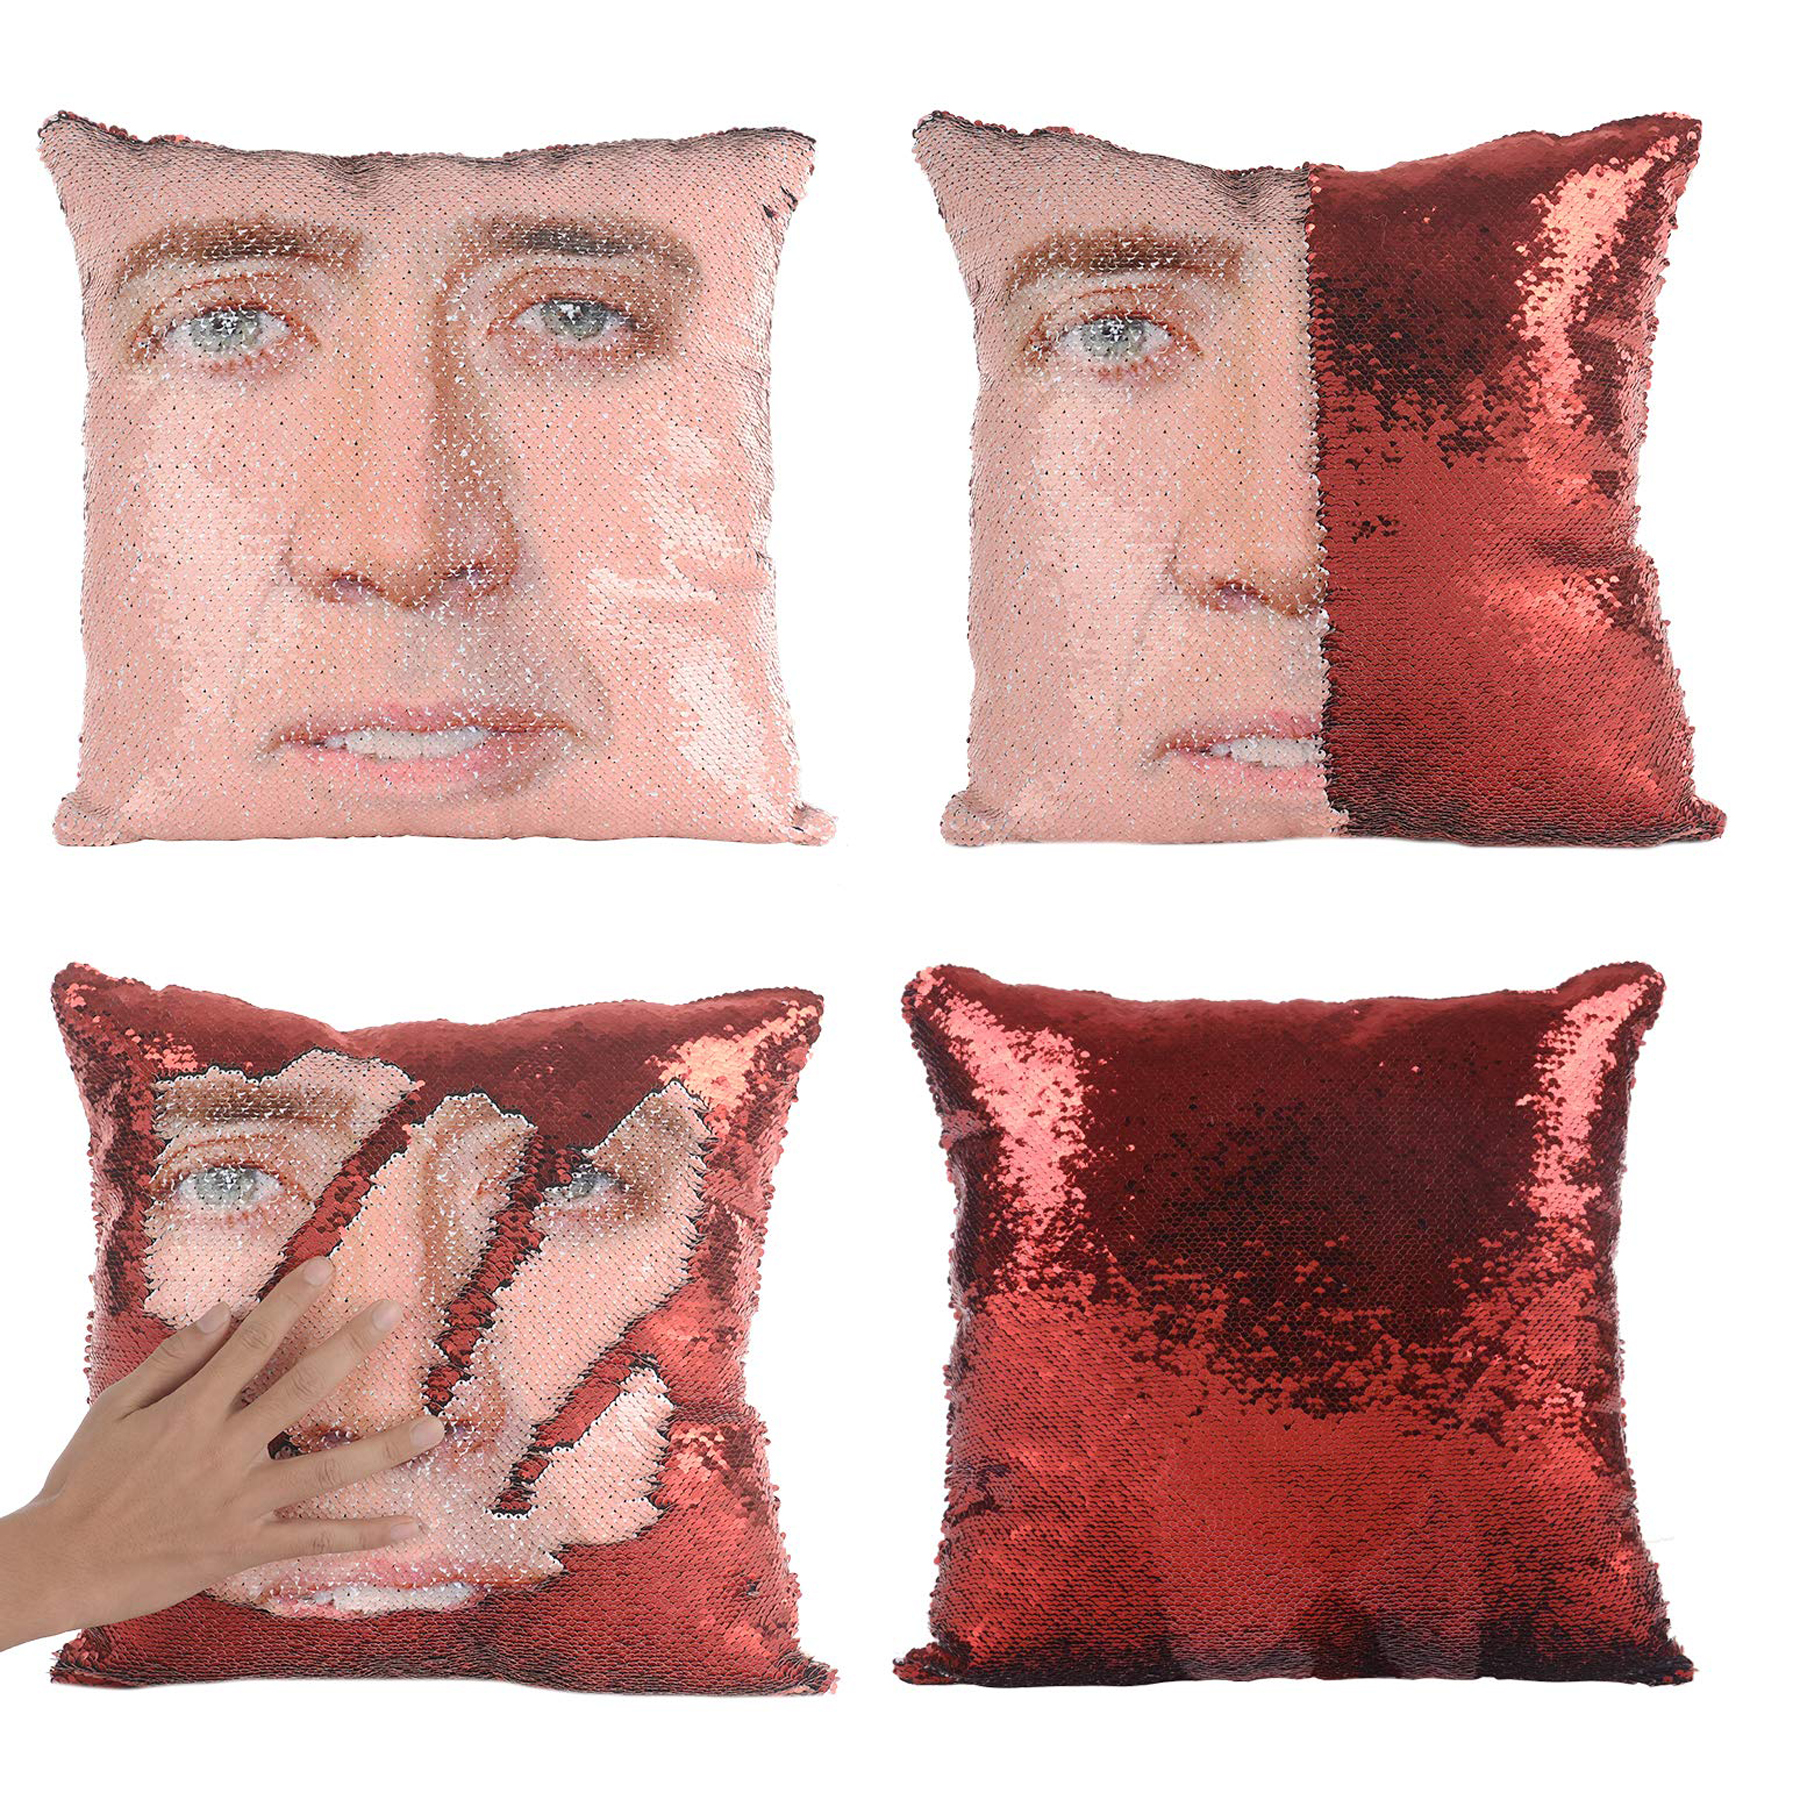 Funny gifts for men - Nicolas Cage Magic Reversible Sequin Pillow Cover